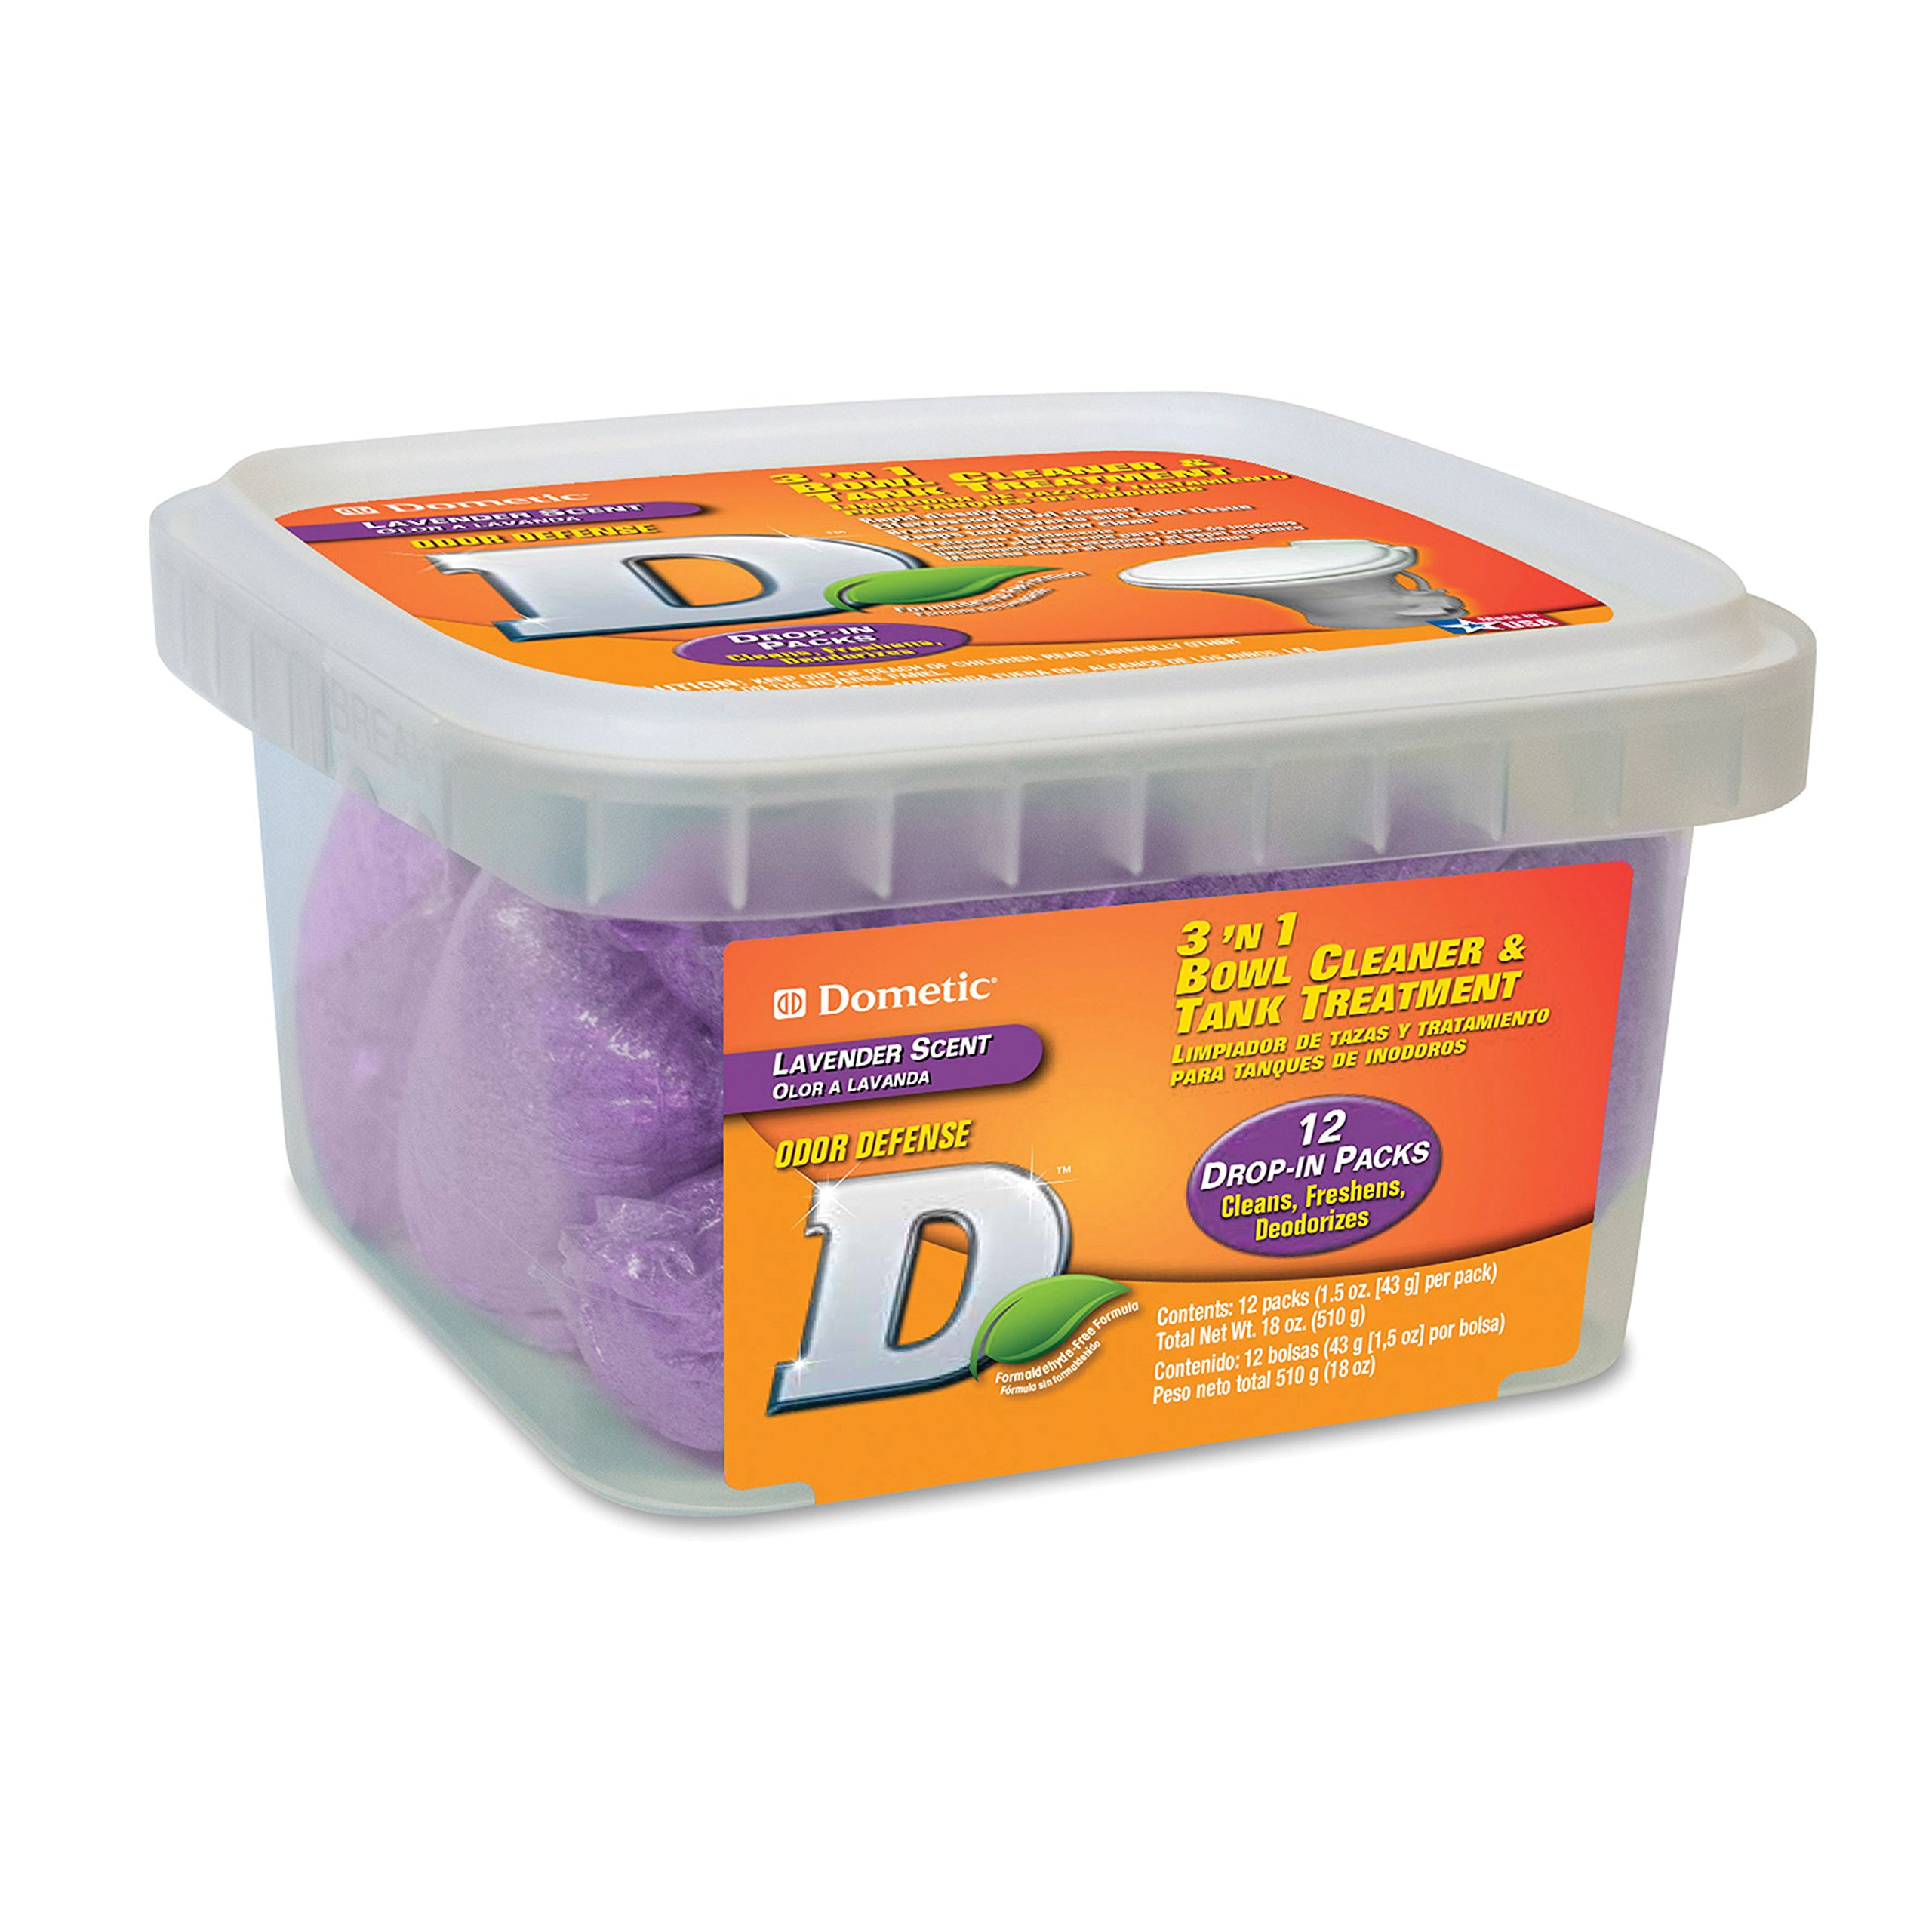 Dometic D1112001 3 N 1 Bowl Cleaner & Tank Treatment 12ct.